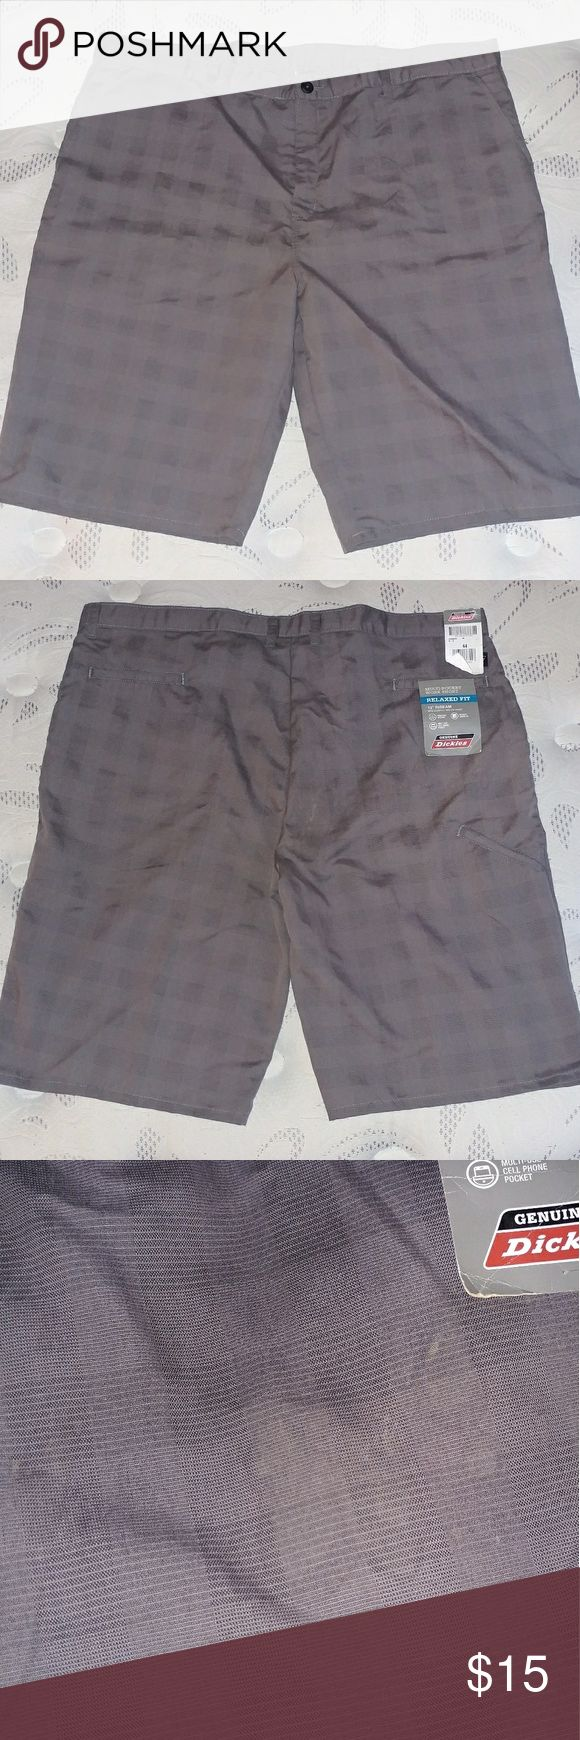 """Men's Dickies Shorts Size 44 NWT Men's work shorts. 13"""" inseam. Grey. (Pictured) Shorts have dirt on them (sorry, that's how they were purchased). Dickies Shorts"""